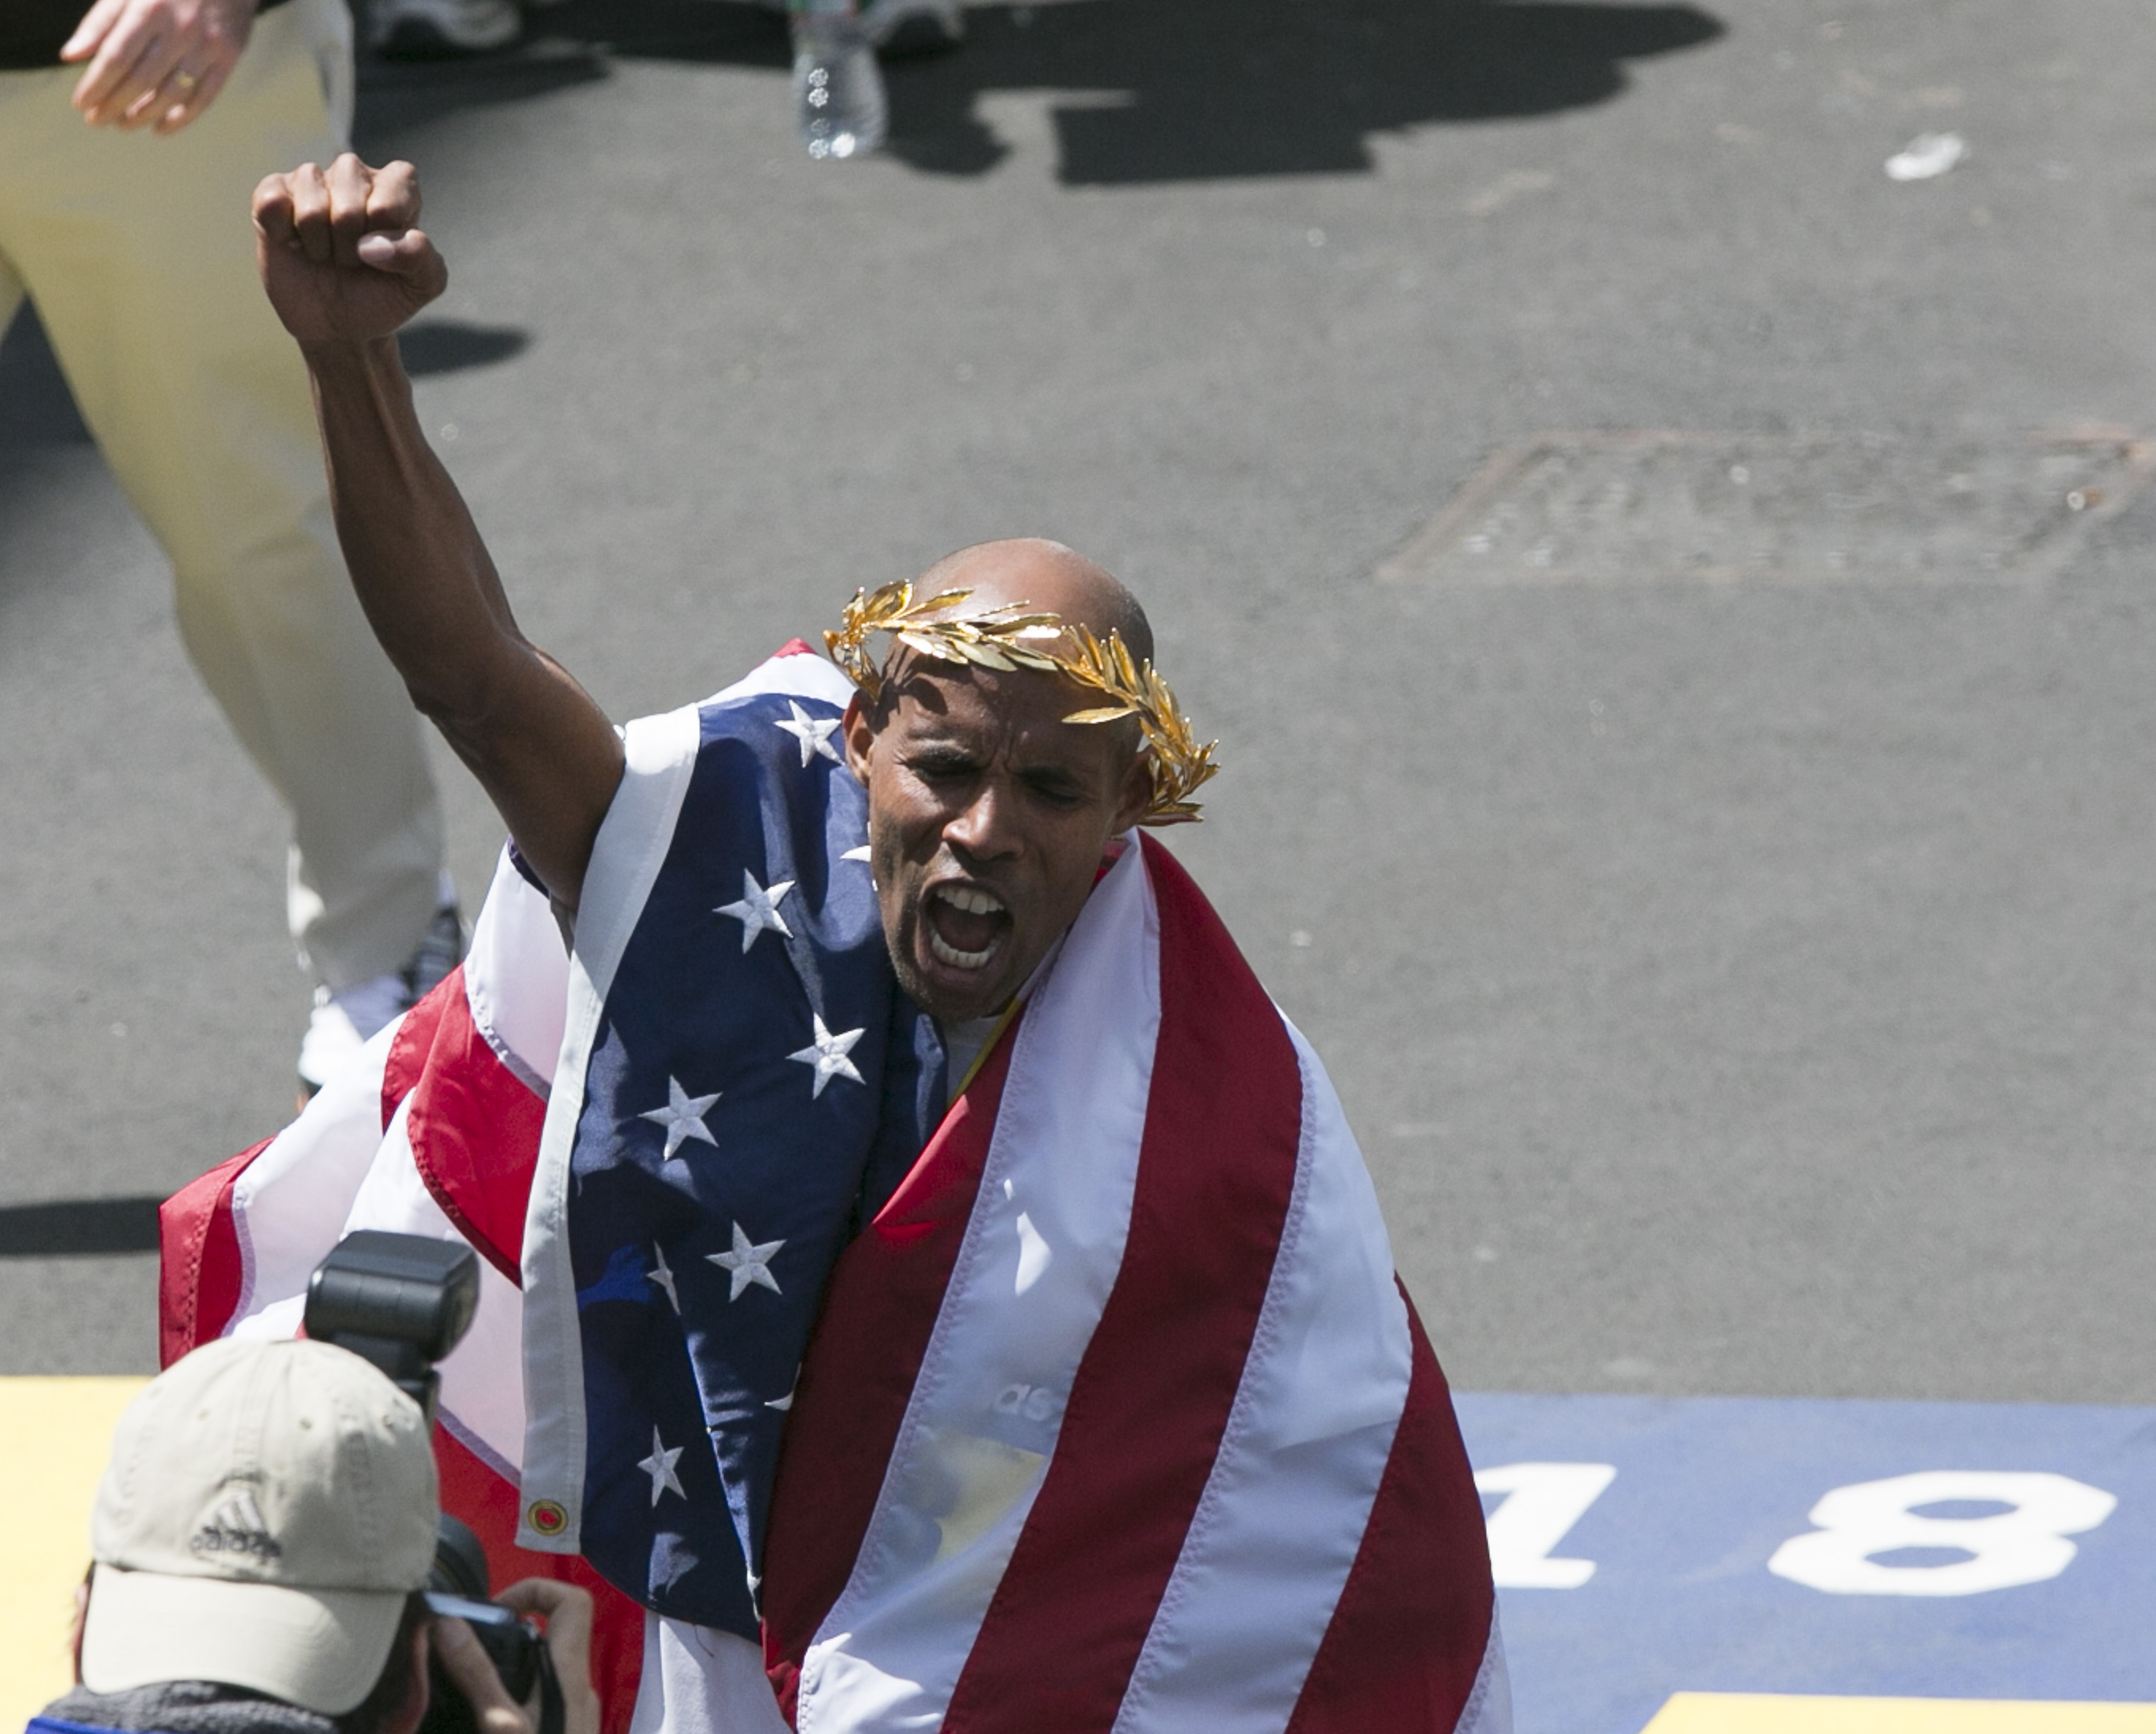 Meb Keflezighi of the U.S. celebrates after winning the men's race of the Boston Marathon,He is the first American to win the men's race since 1983. (Katherine Taylor/The New York Times)